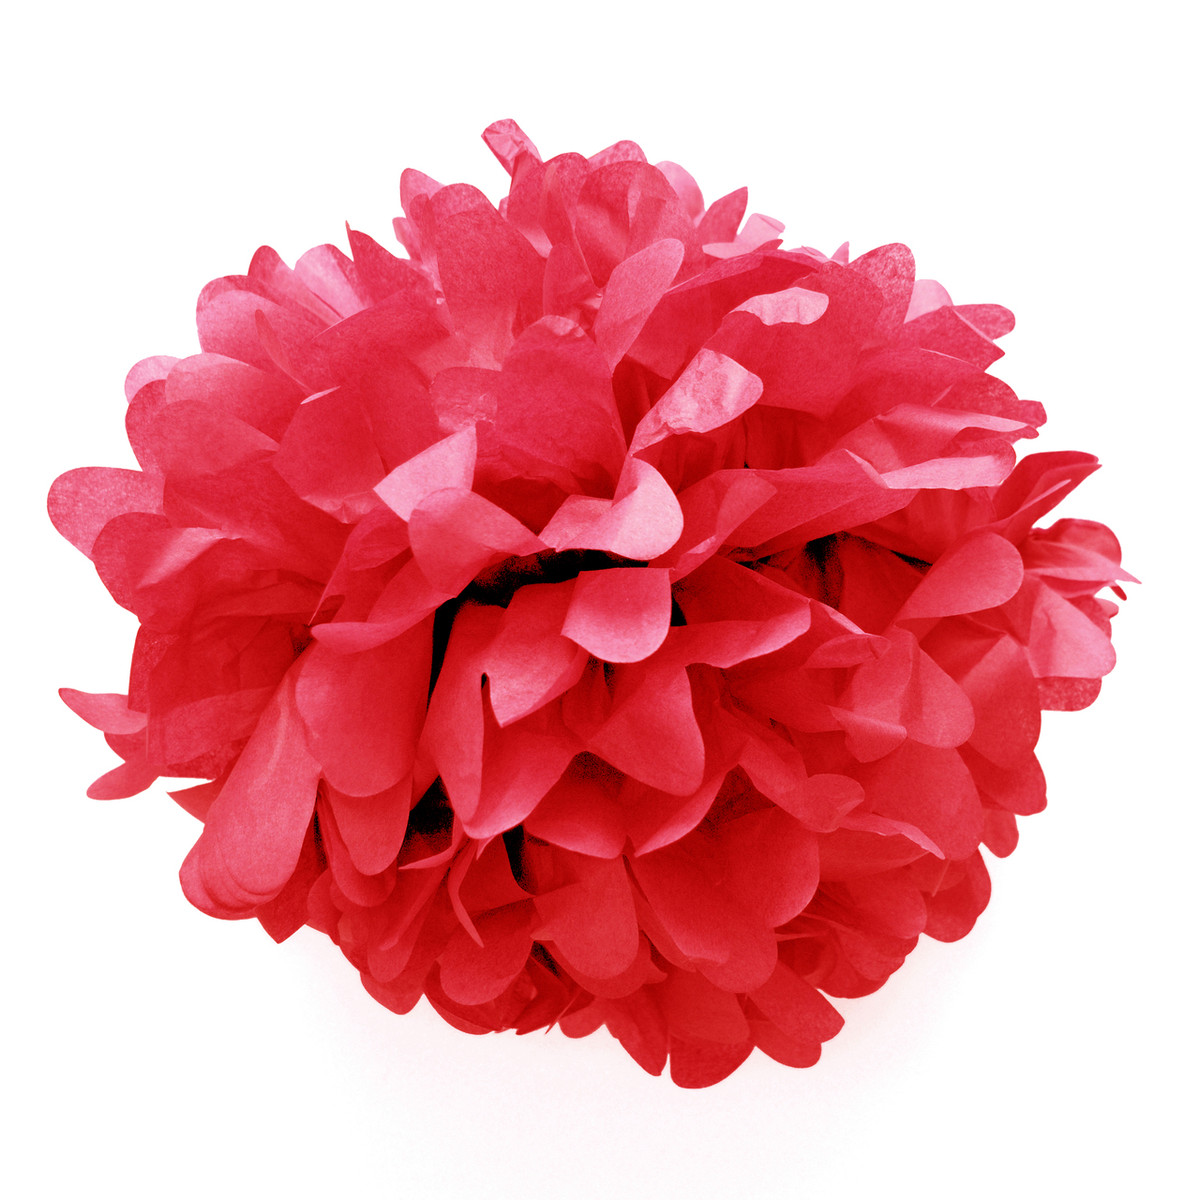 Paper Pom Pom Decorations For Weddings Birthdays And Summer Parties